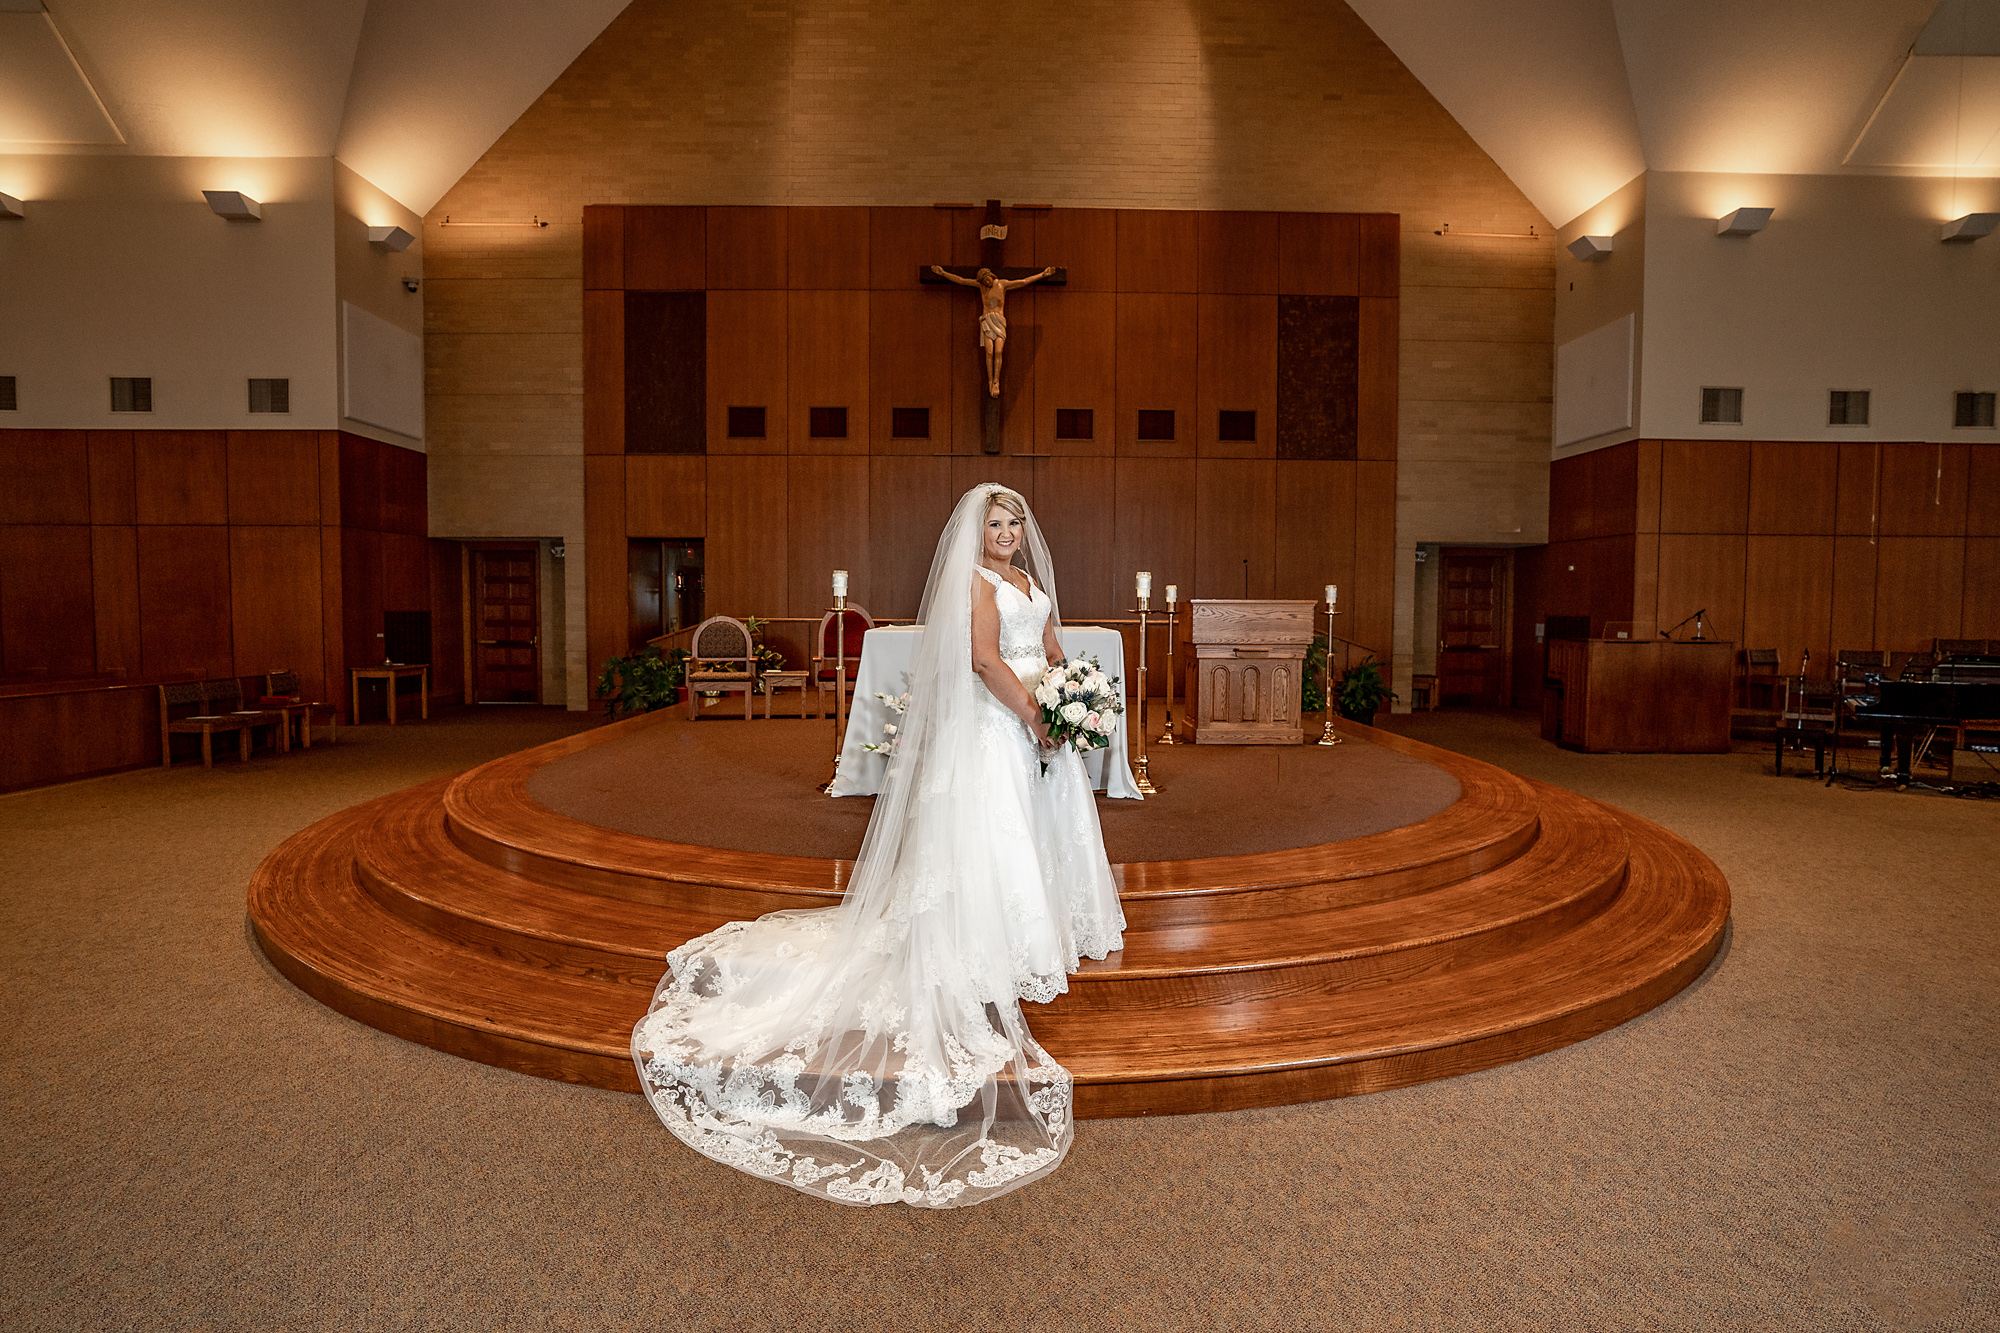 St-Max-Kolbe-Wedding-Ohio-Photographer-10.jpg